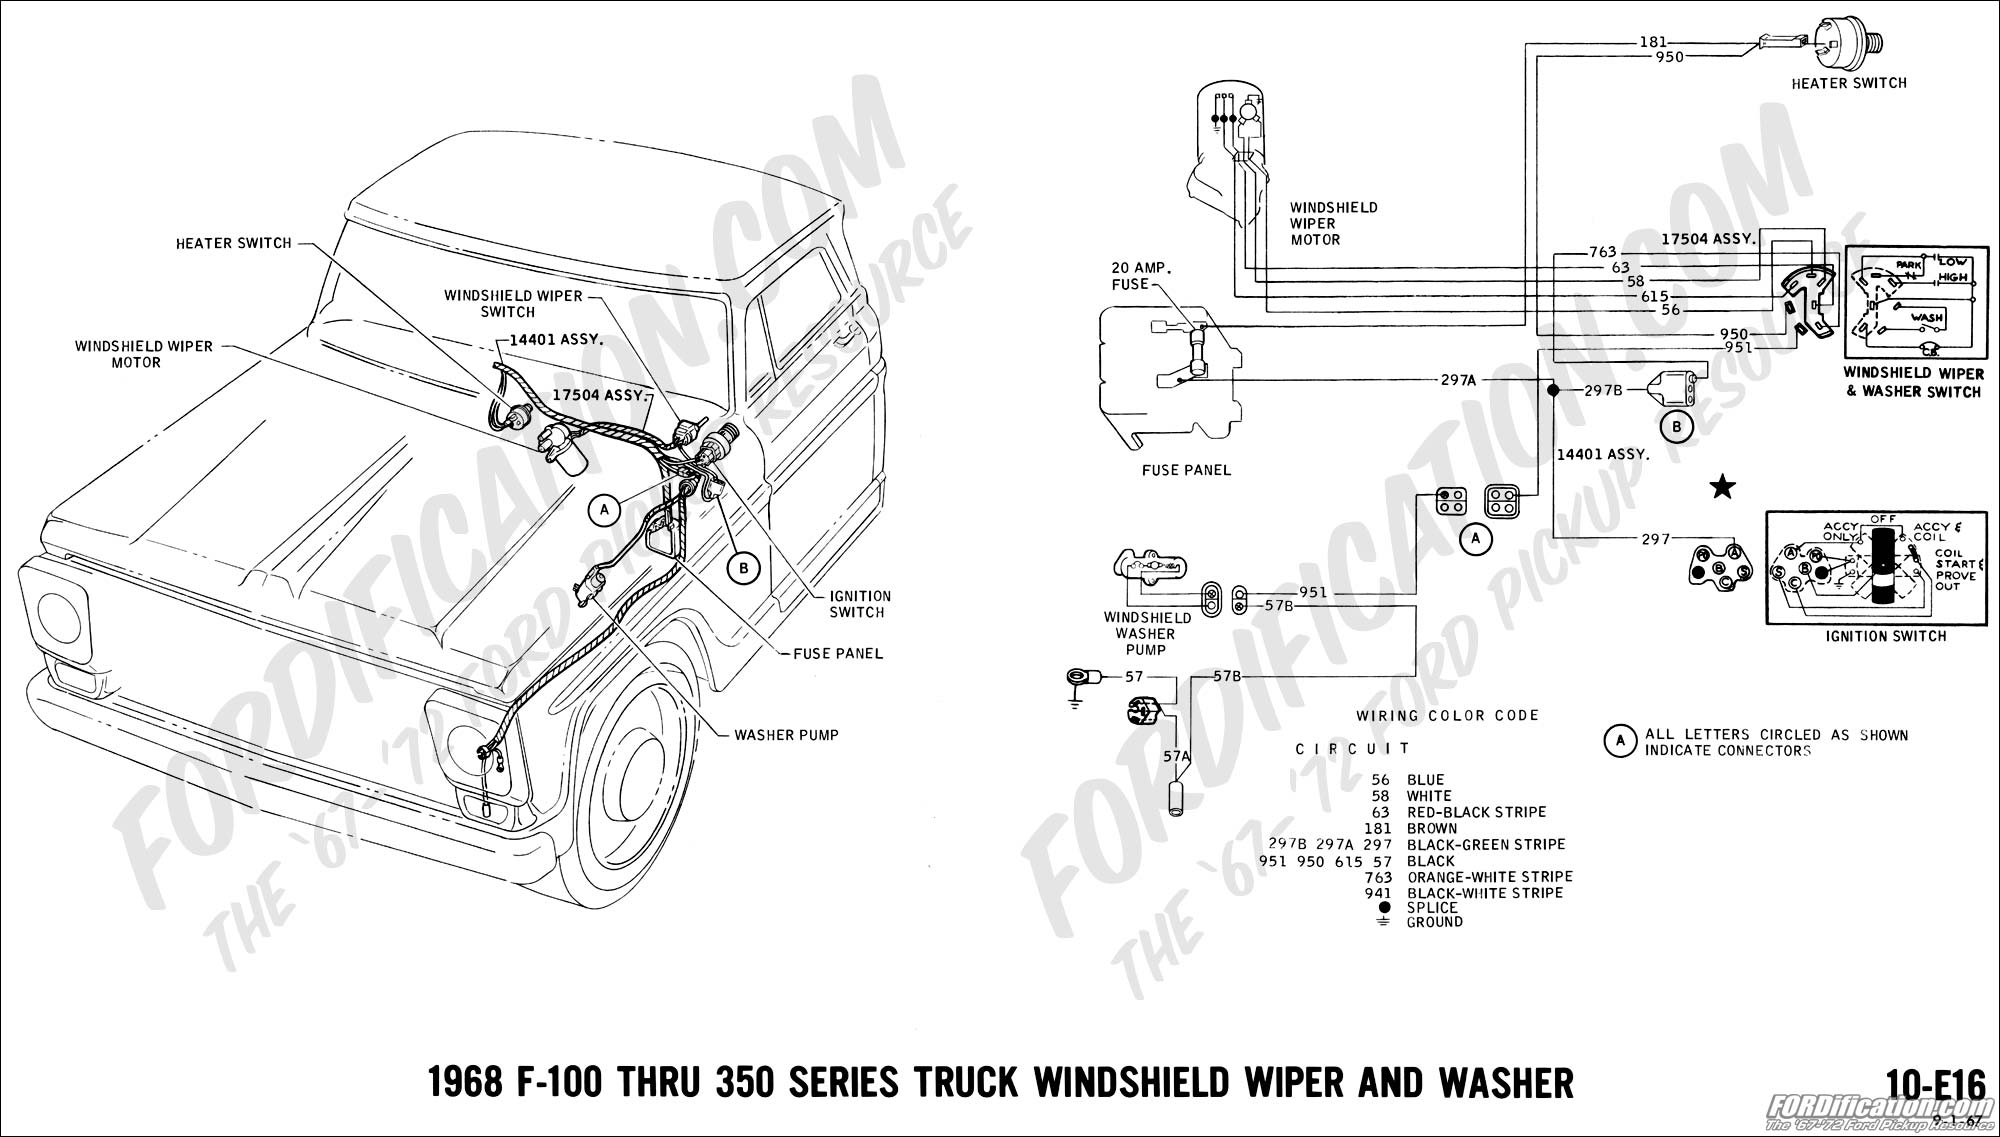 2004 Ford F450 Fuse Panel Diagram Simple Guide About Wiring Truck Technical Drawings And Schematics Section H